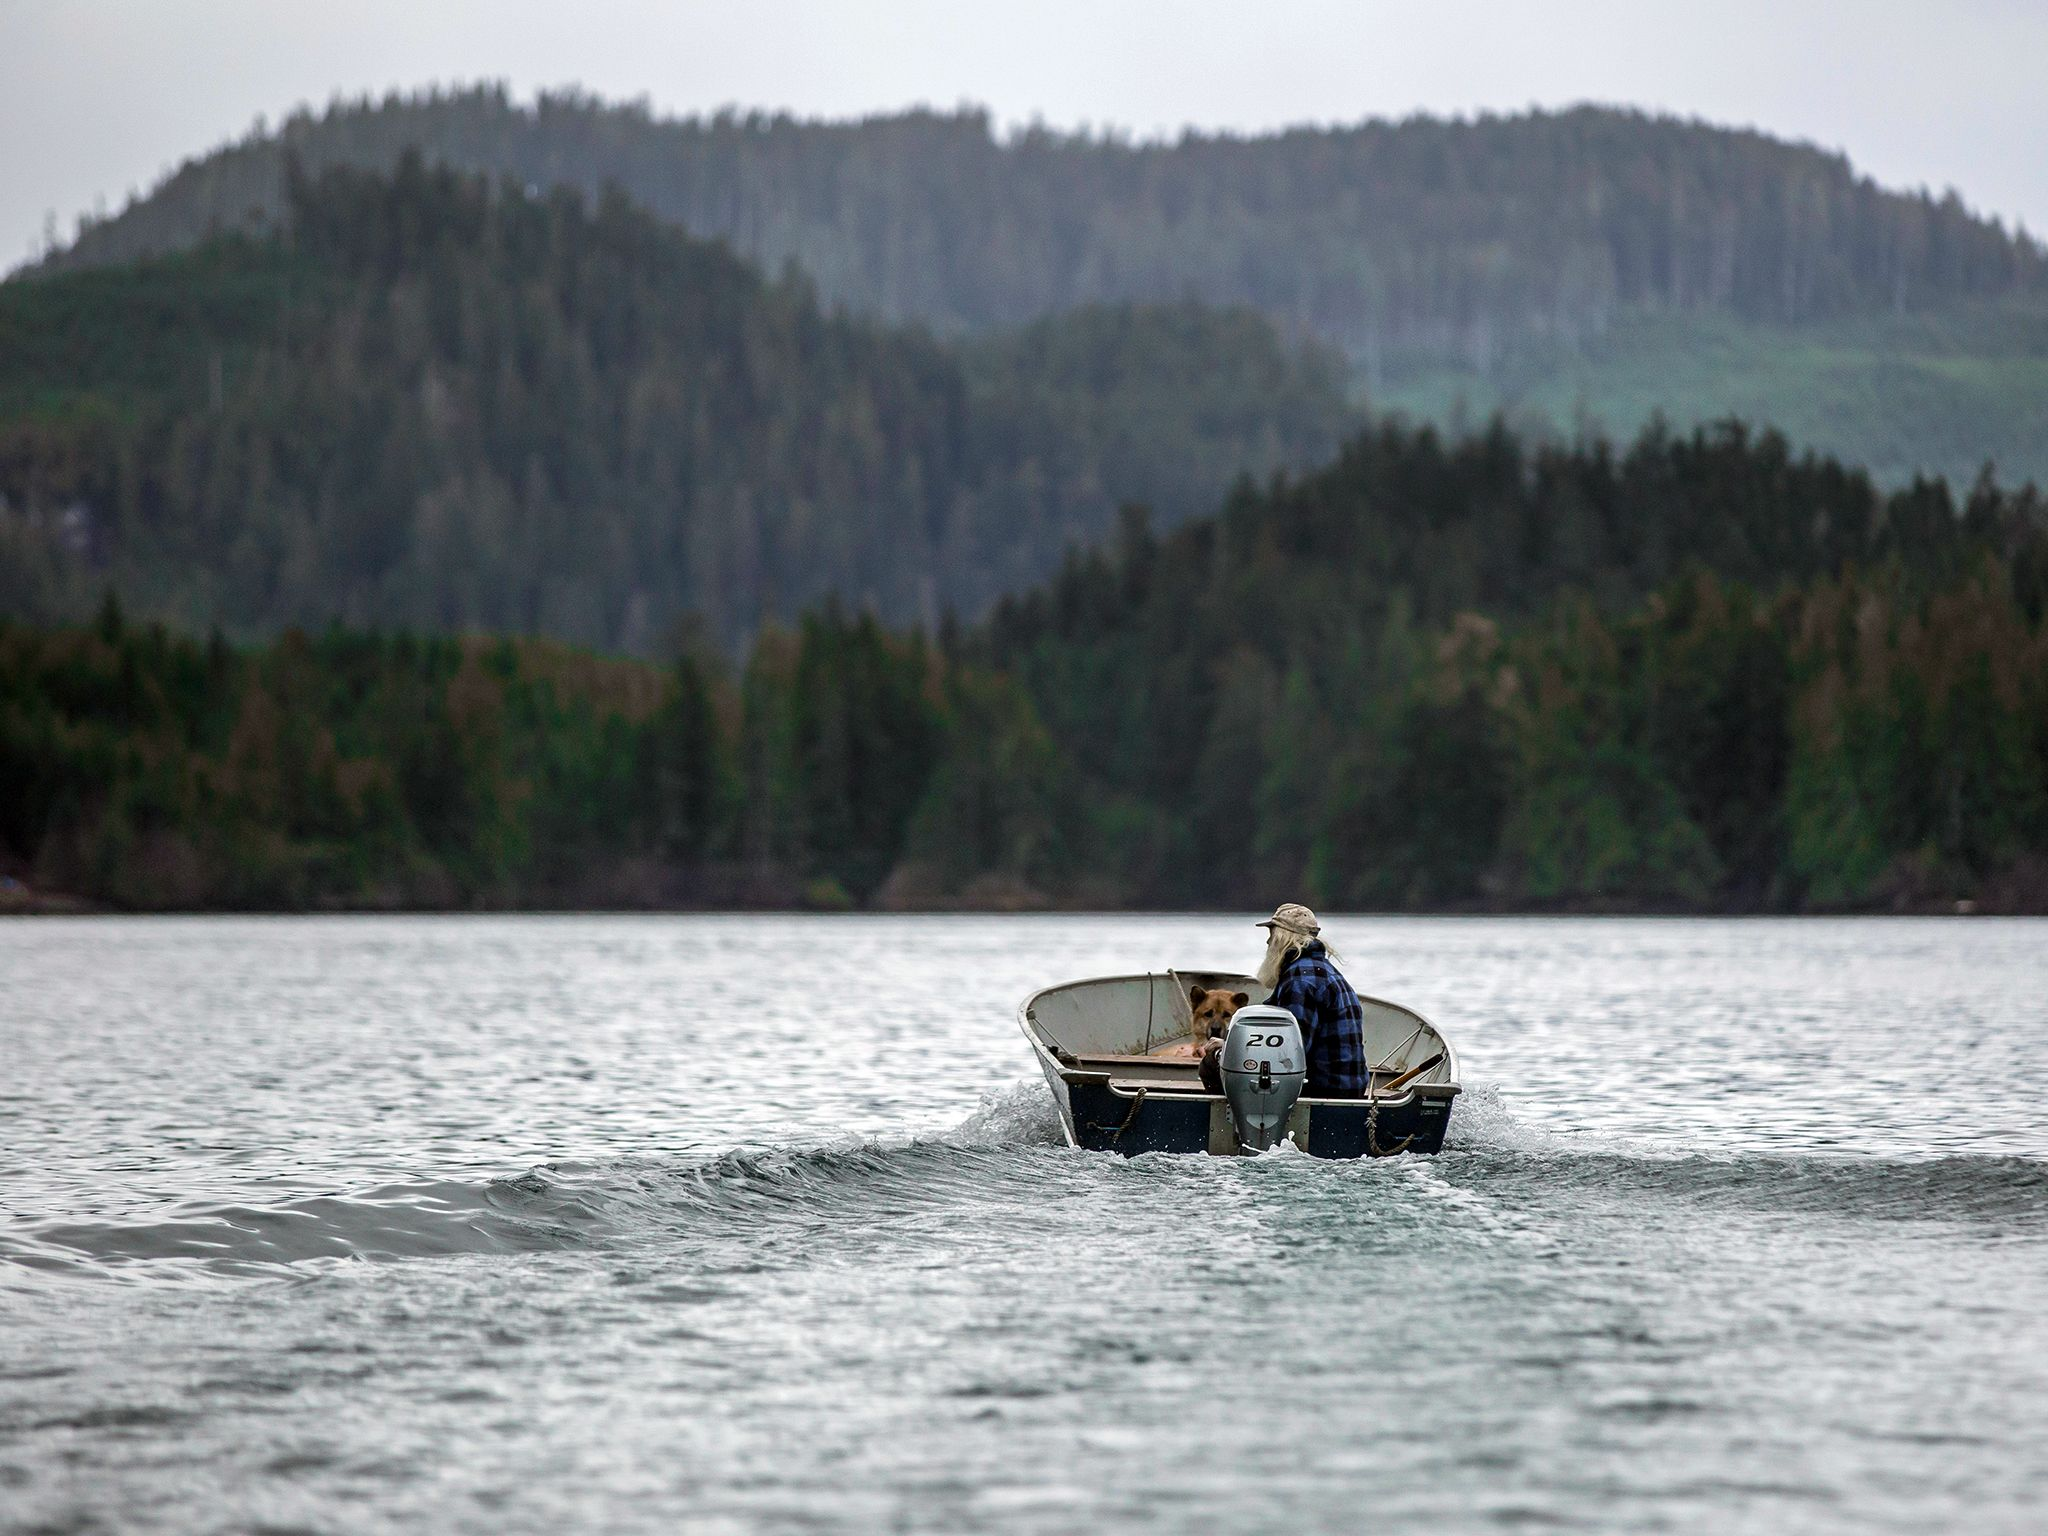 Port Protection, Alaska: Gary drives his boat to the place where he wants to forage for clams.... [Photo of the day - November 2015]